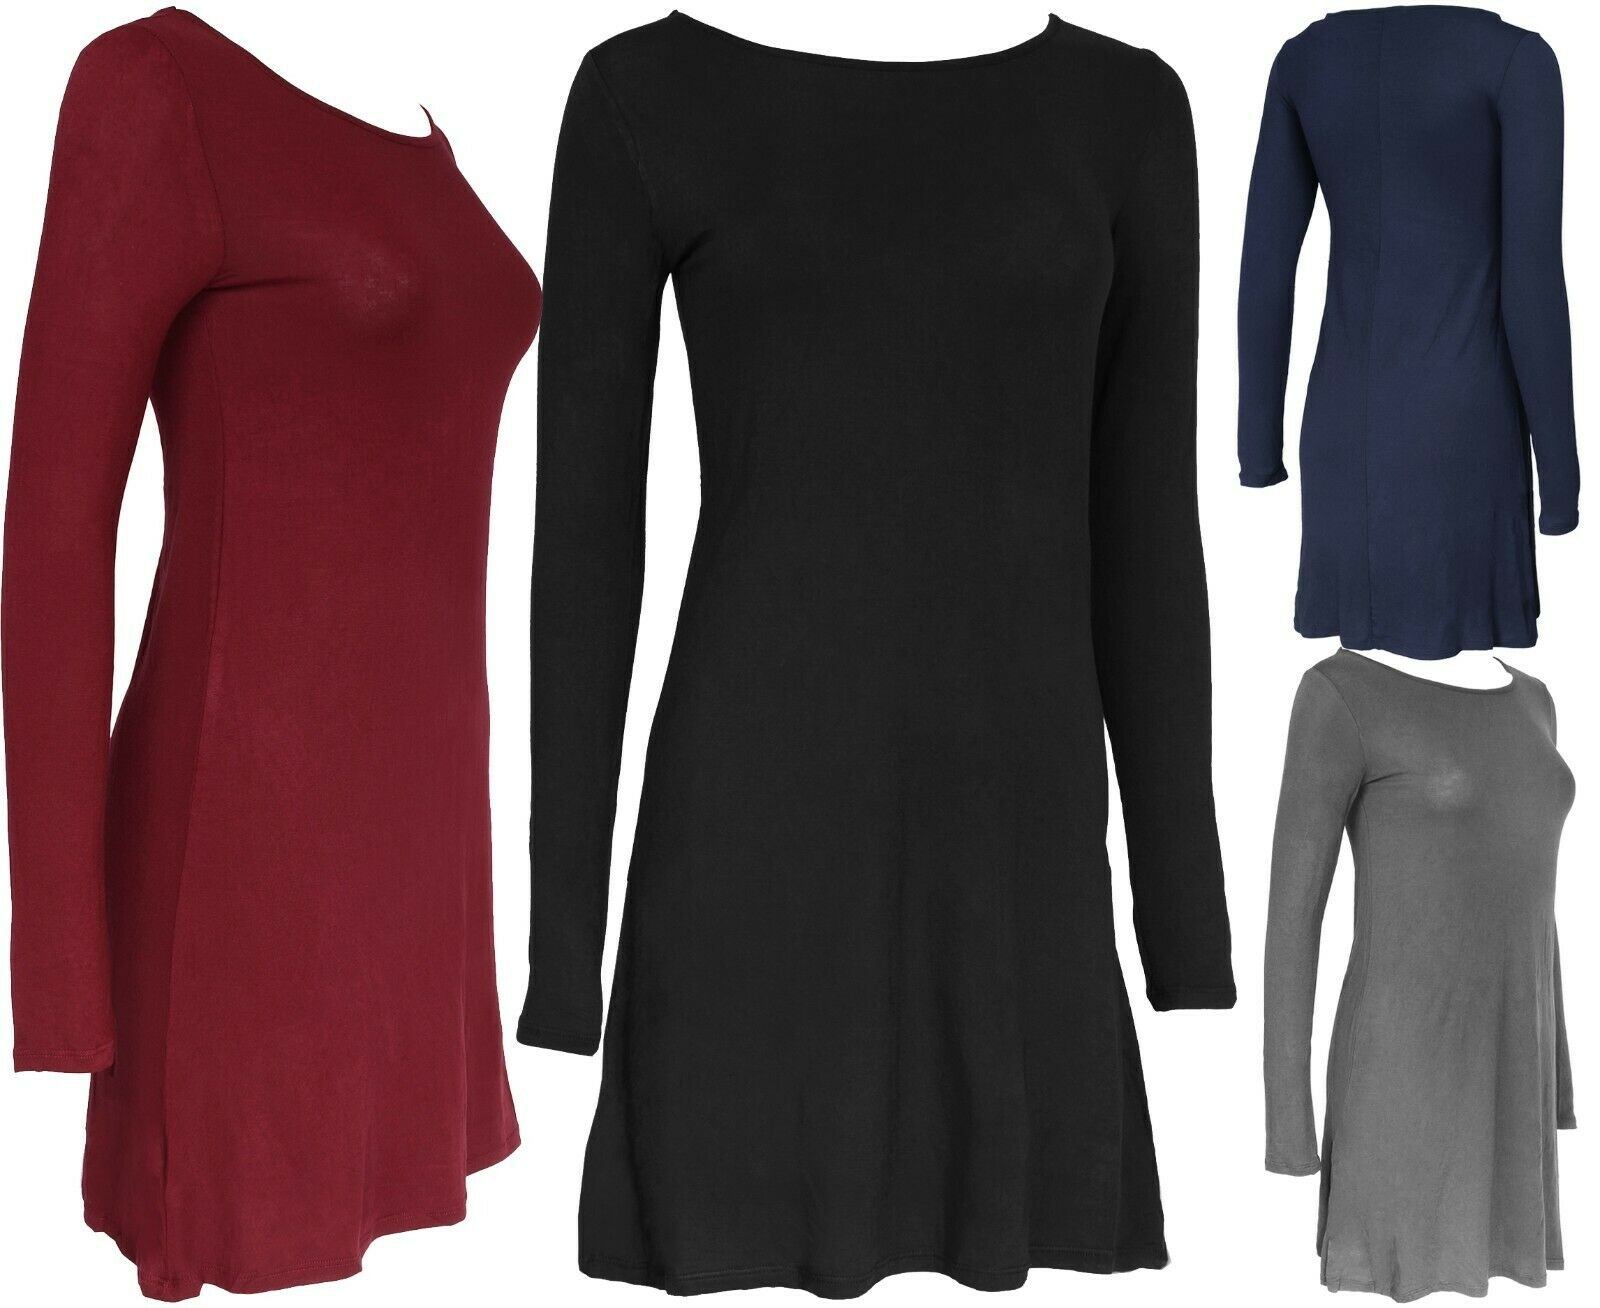 Women's Long Sleeve Round Neck Flowy Tunic Dress Clothing, Shoes & Accessories